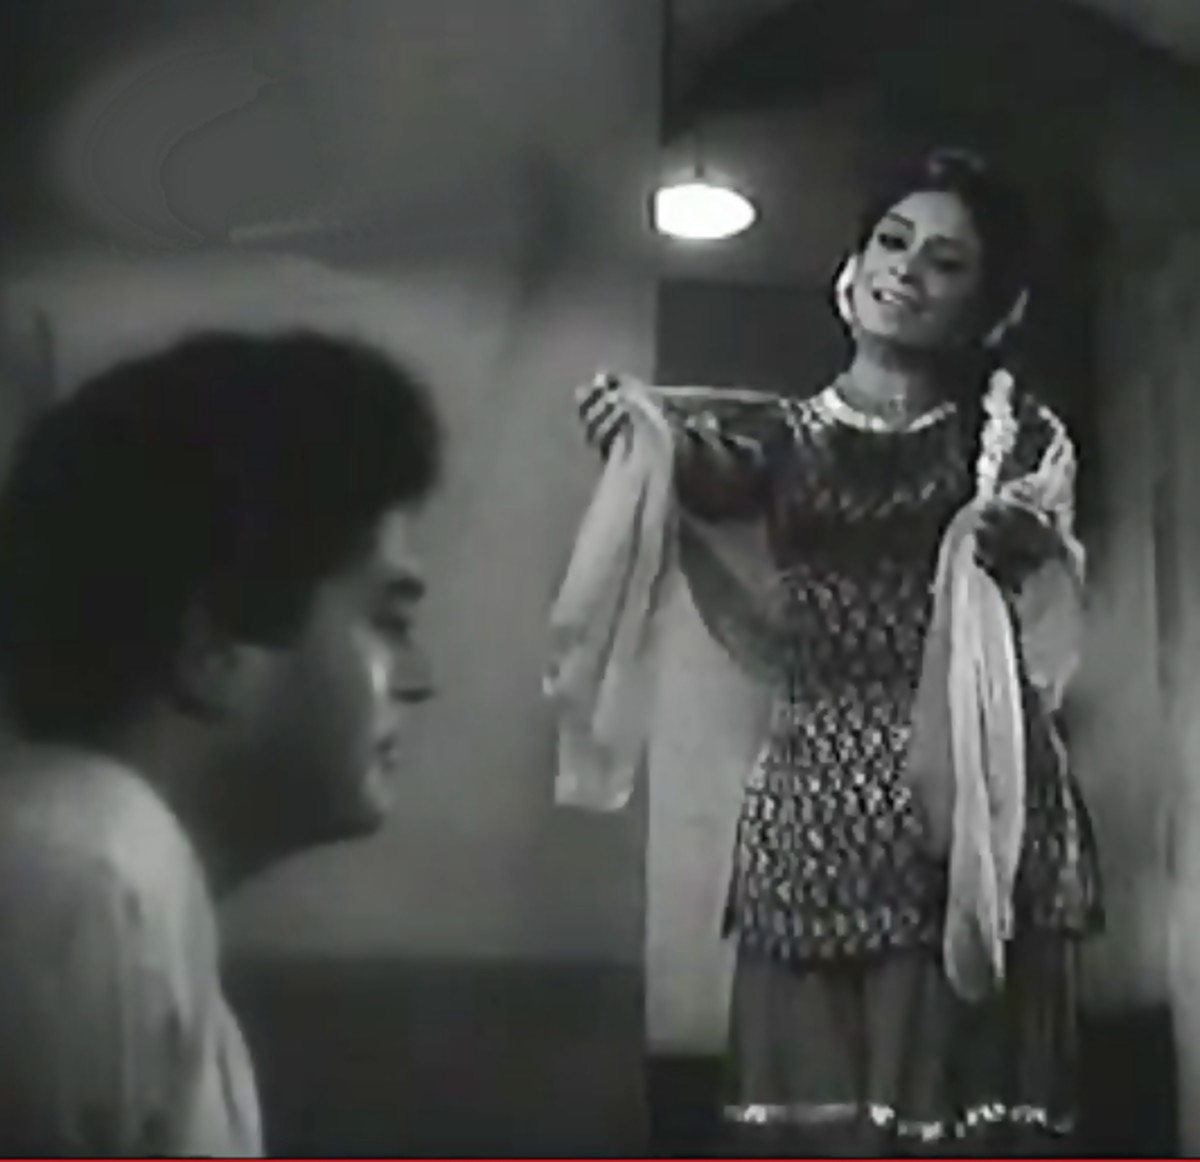 A great exposition of Raga Charukesi by the living legend, Lata Mangeshkar. This song is featured on Rehana Sultana & Sanjeev Kumar, in a movie with a very unique plot.